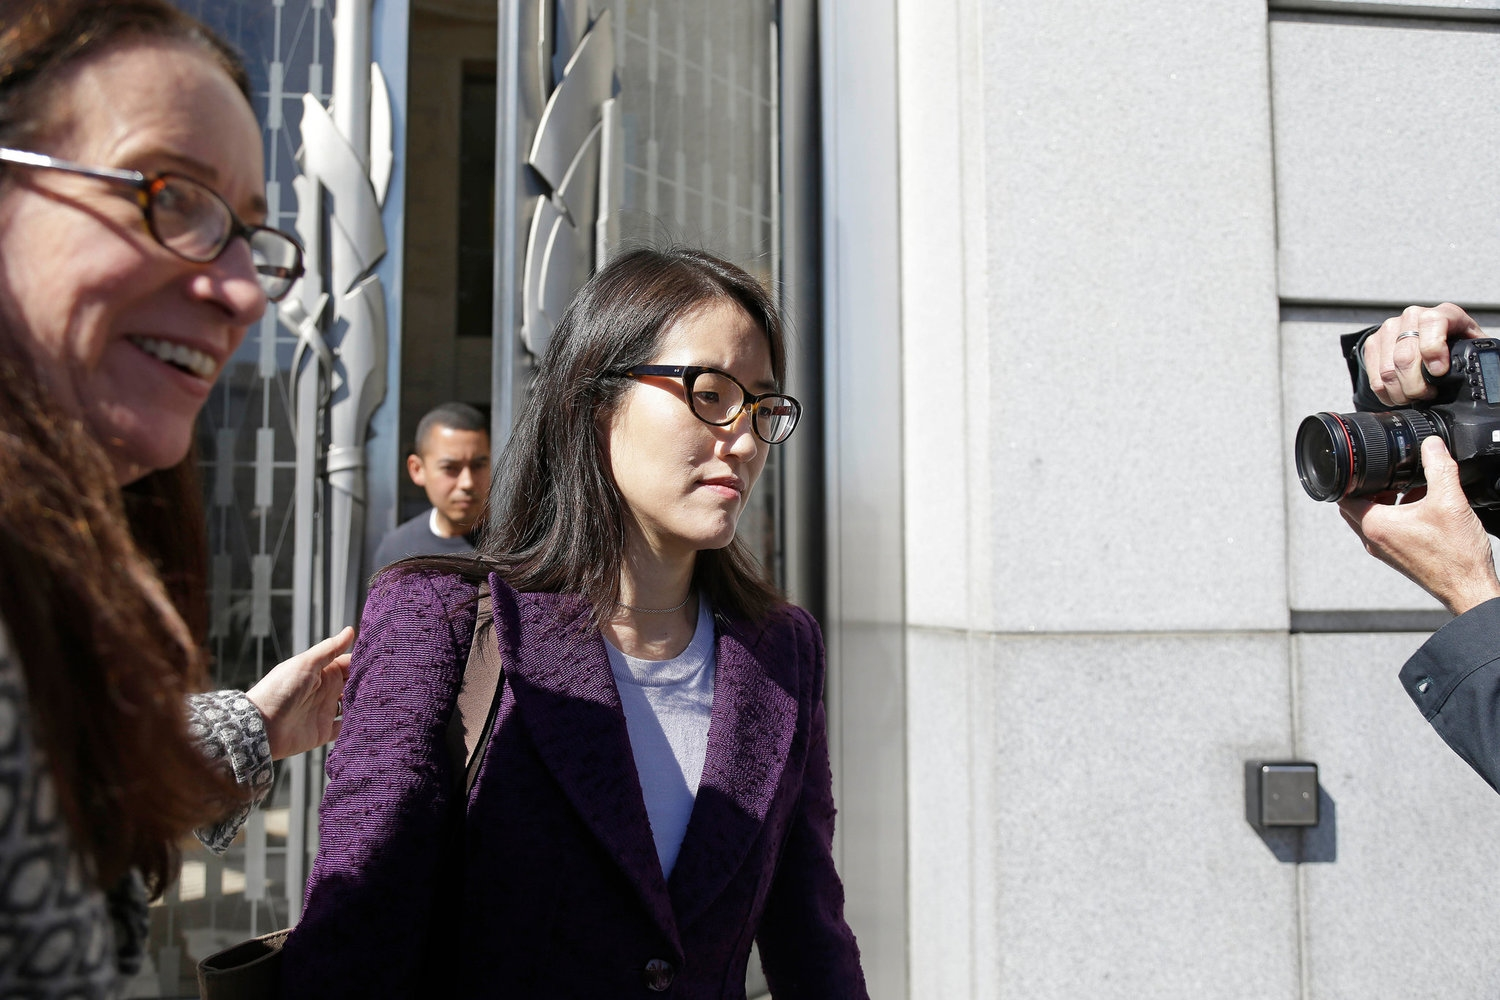 Ellen Pao leaving court with her lawyer, Therese Lawless. Photo credit: Eric Risberg/Associated Press.